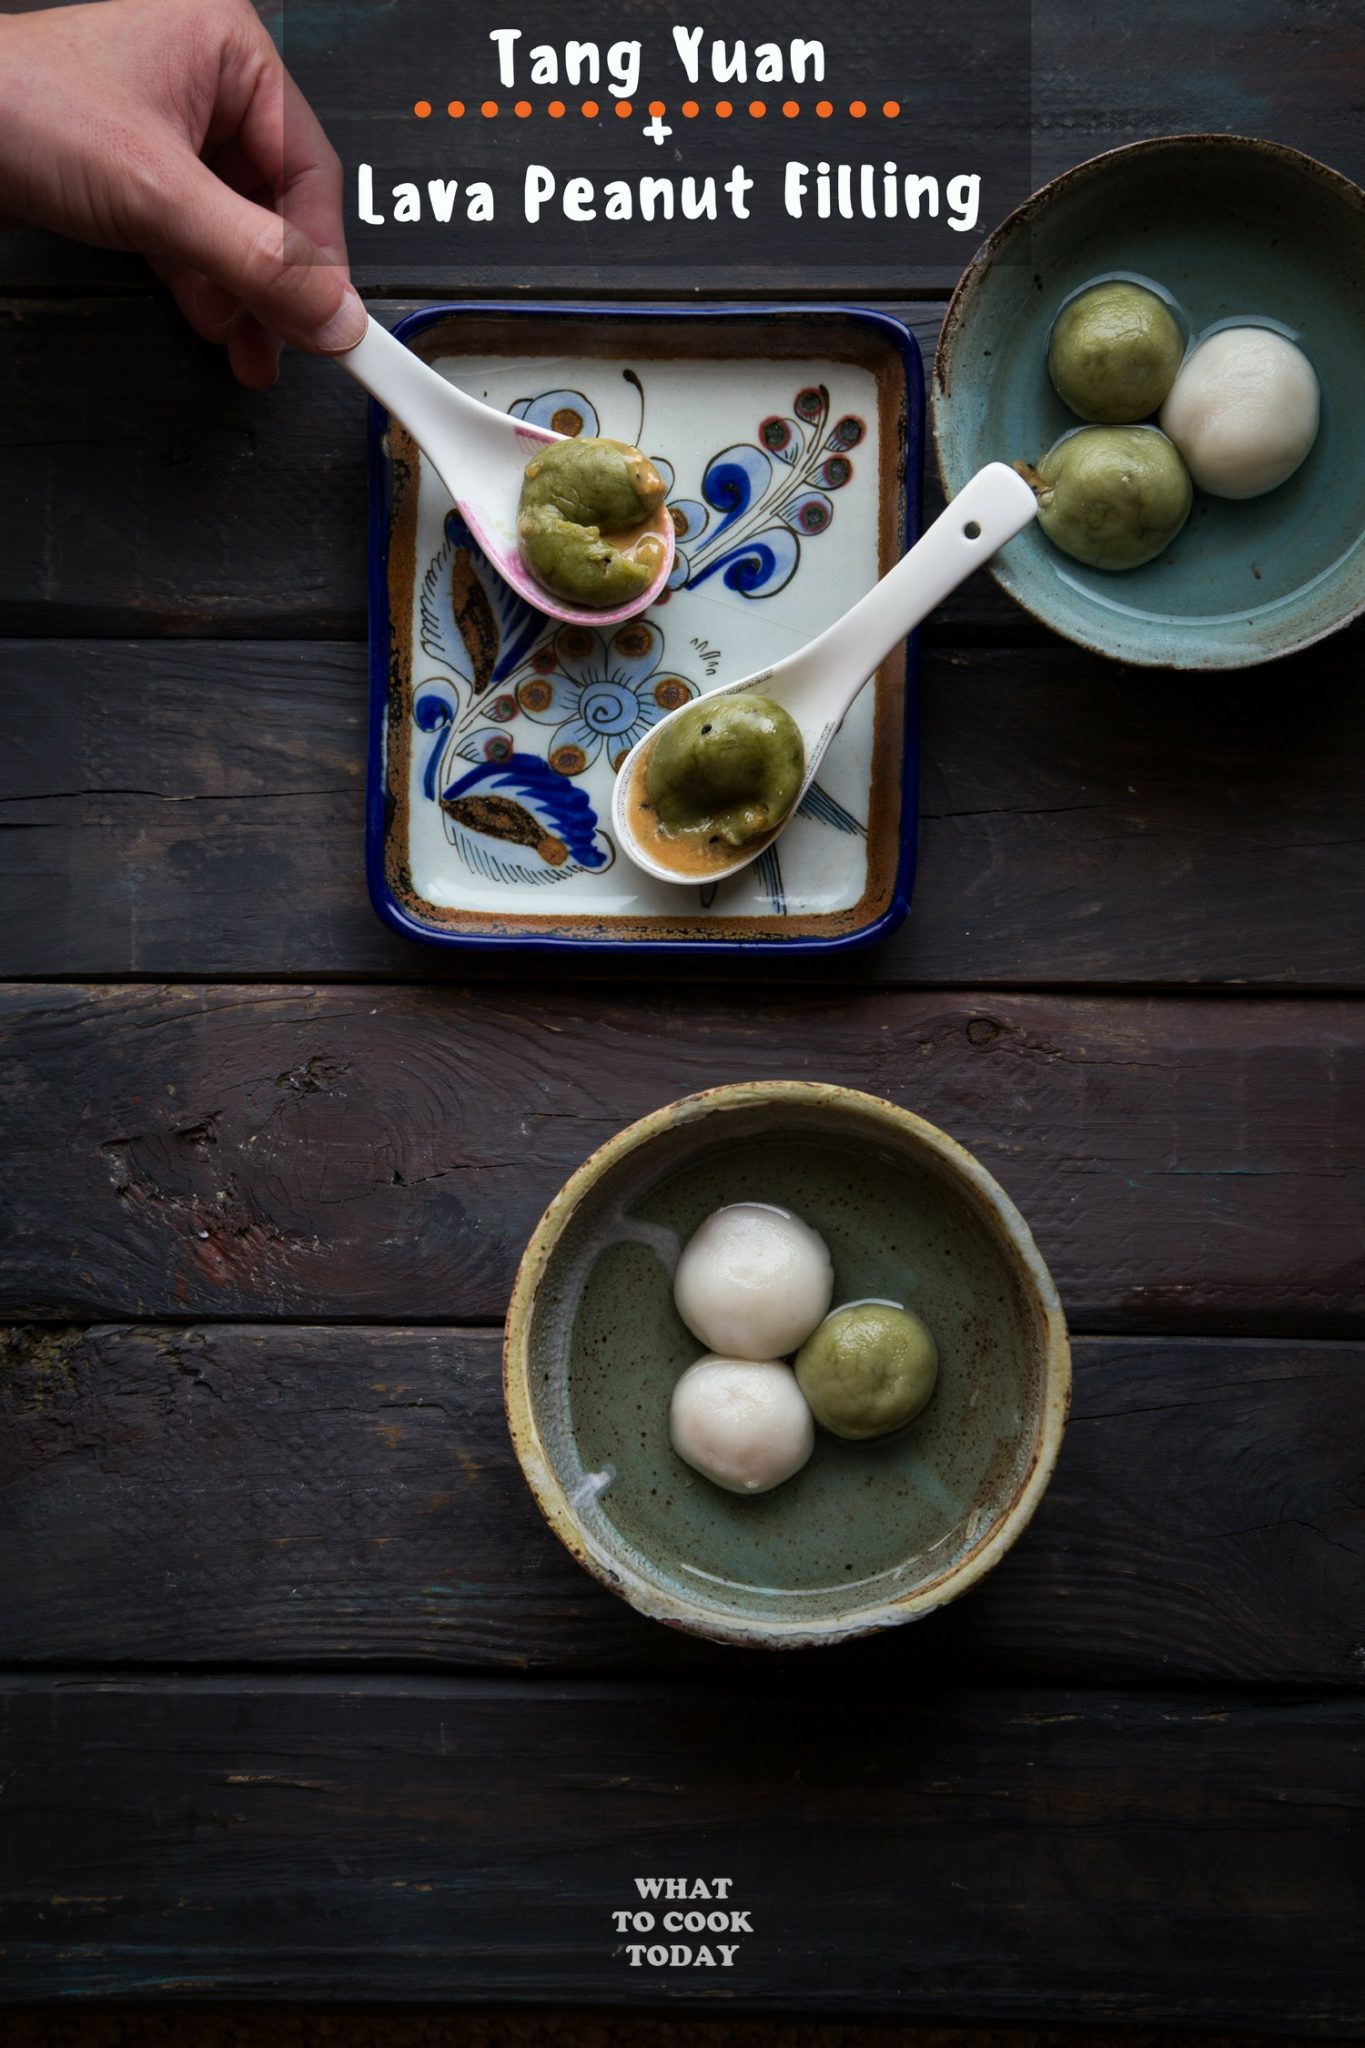 Tang Yuan with Lava Peanut Filling #tangyuan #peanut #chinesefood #dessert